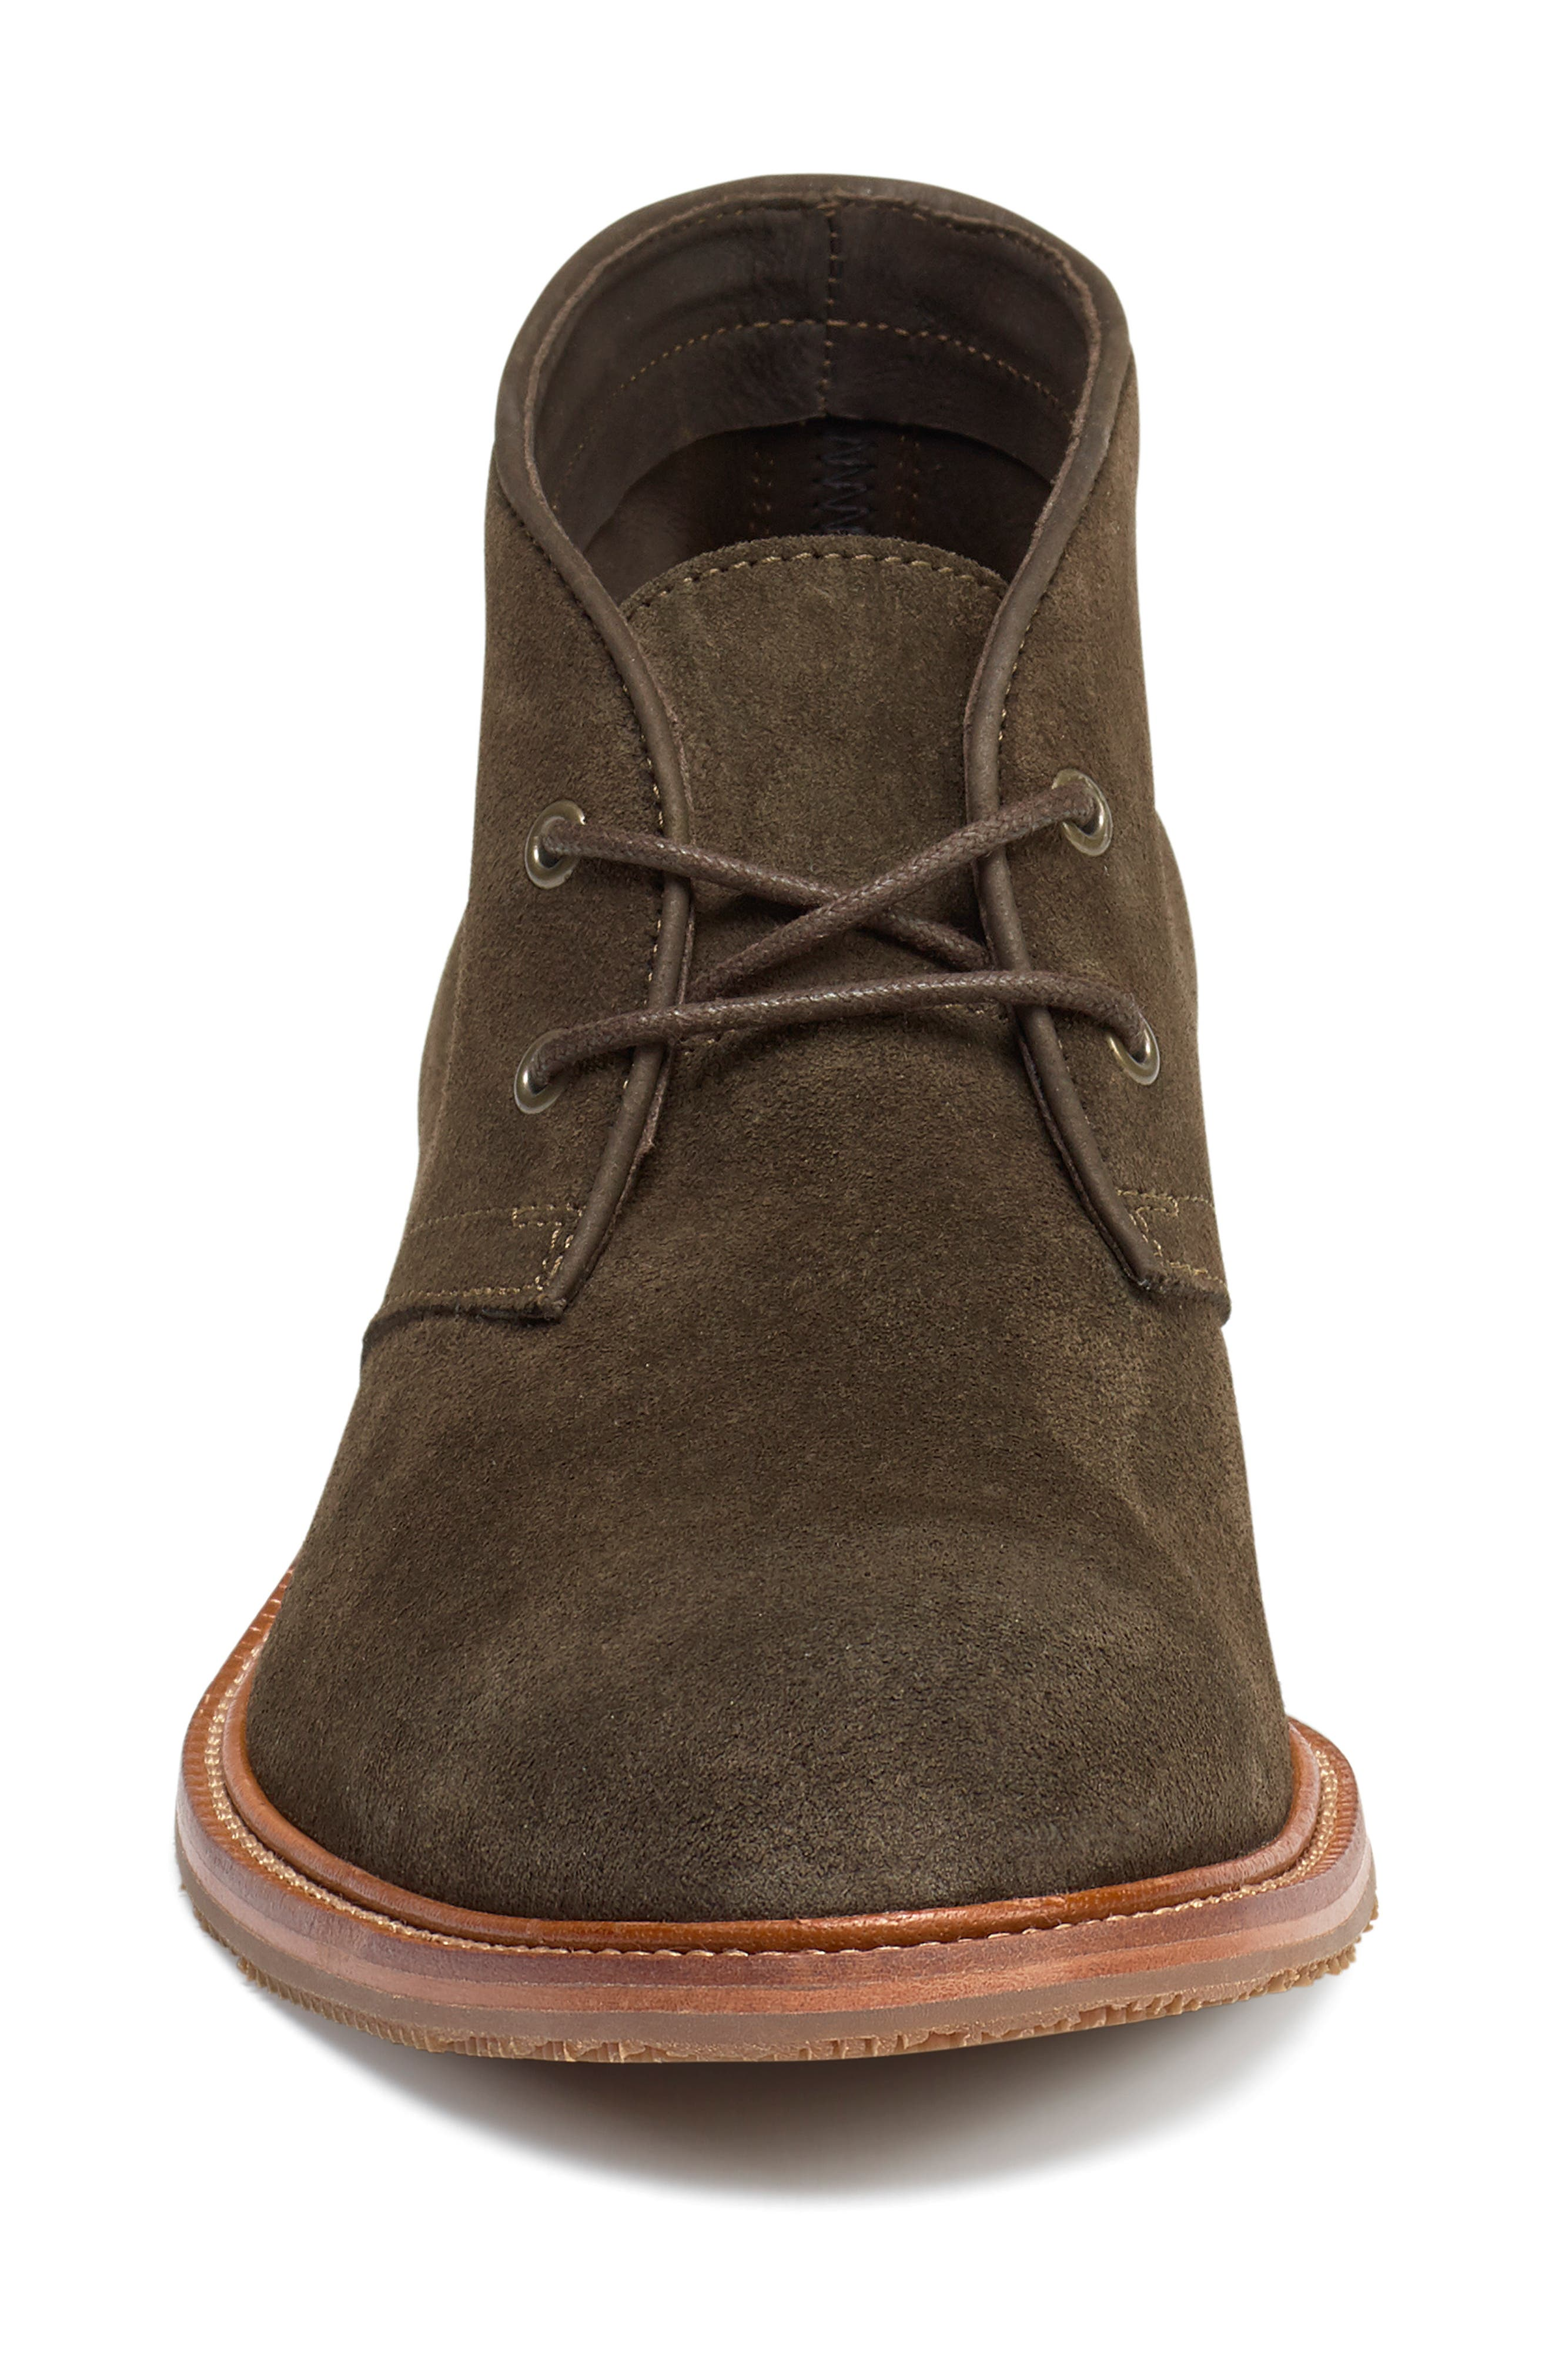 TRASK, Landers Chukka Boot, Alternate thumbnail 4, color, OLIVE SUEDE